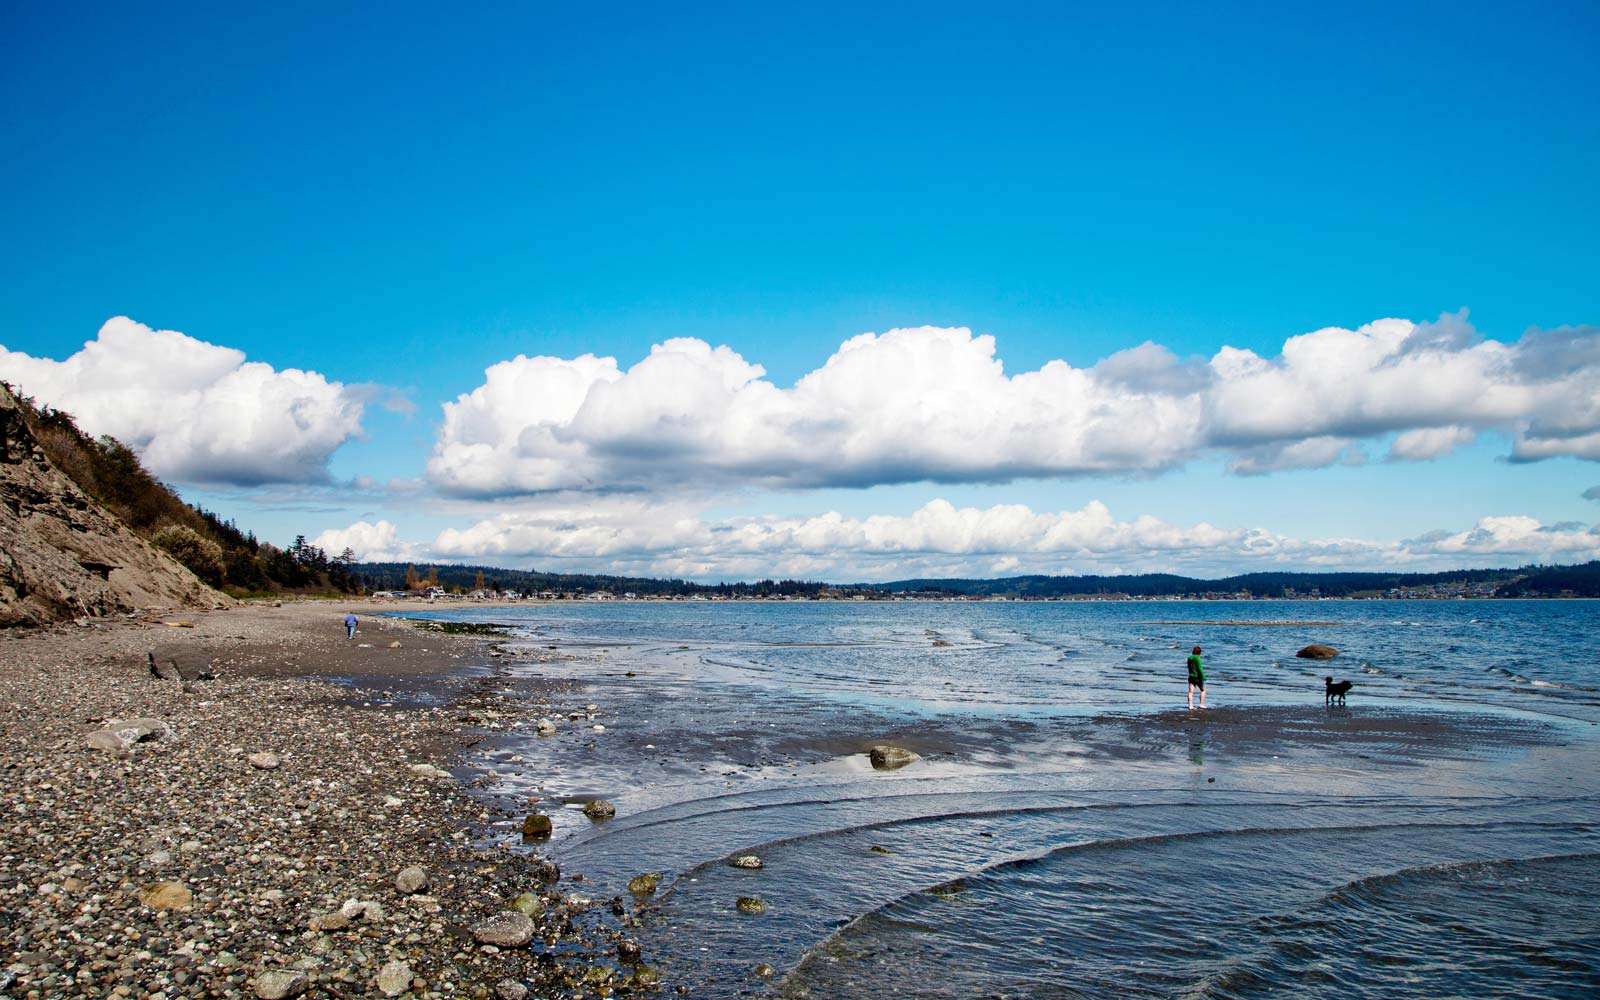 Double Bluff Beach on Whidbey Island, Washington